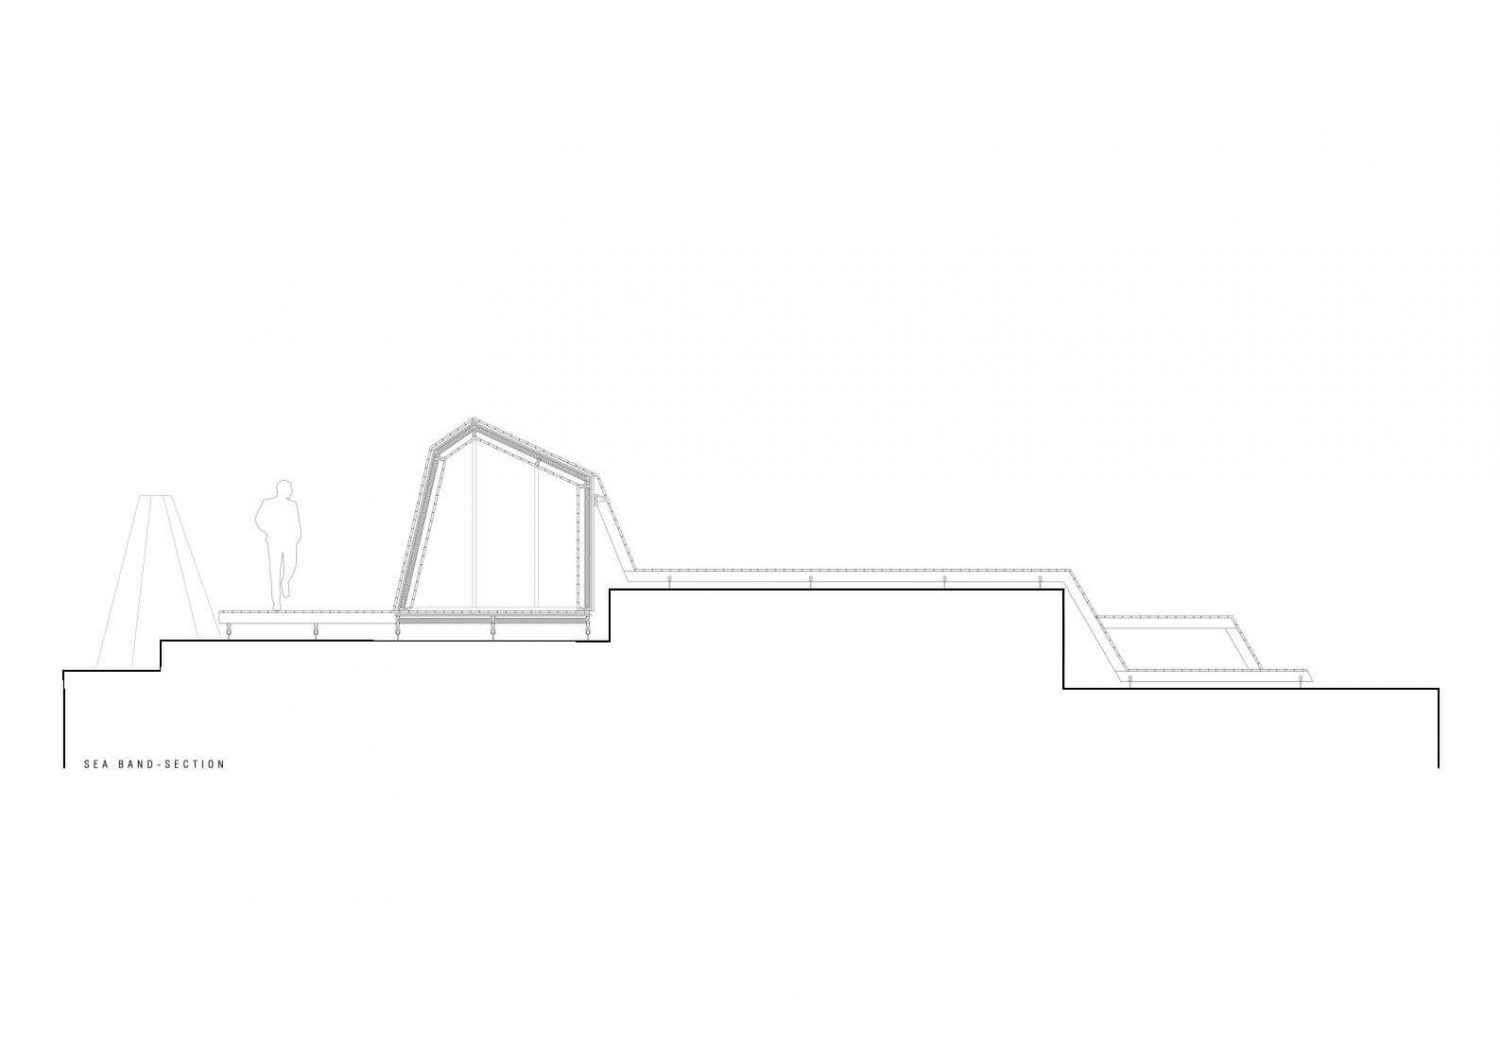 The Bands by Oslo School of Architecture and Design (AHO)